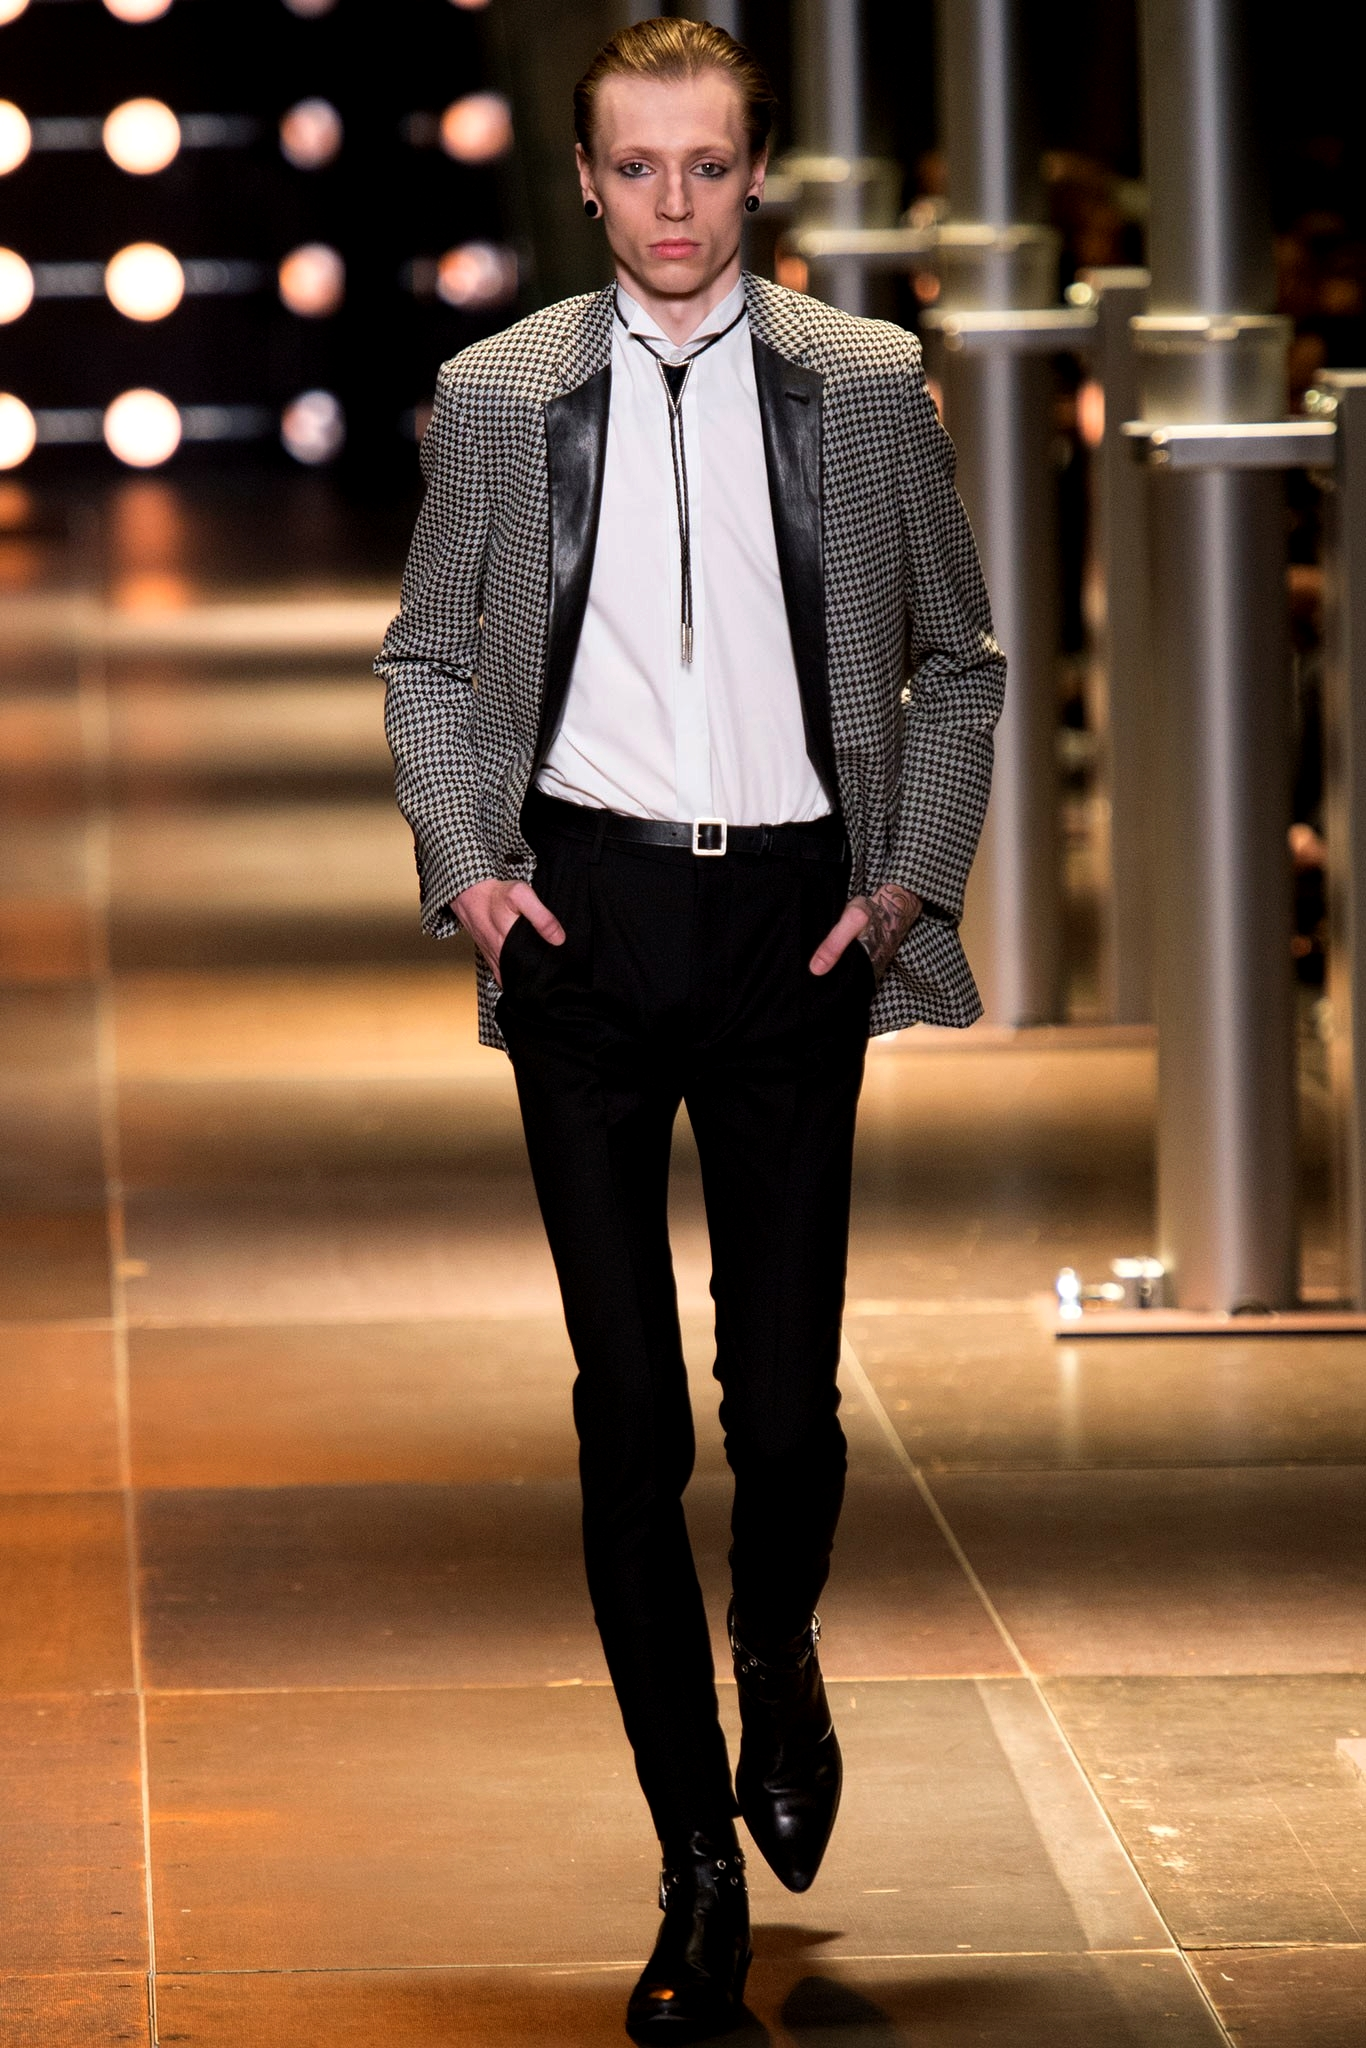 Saint Laurent Spring/Summer 2014 Menswear